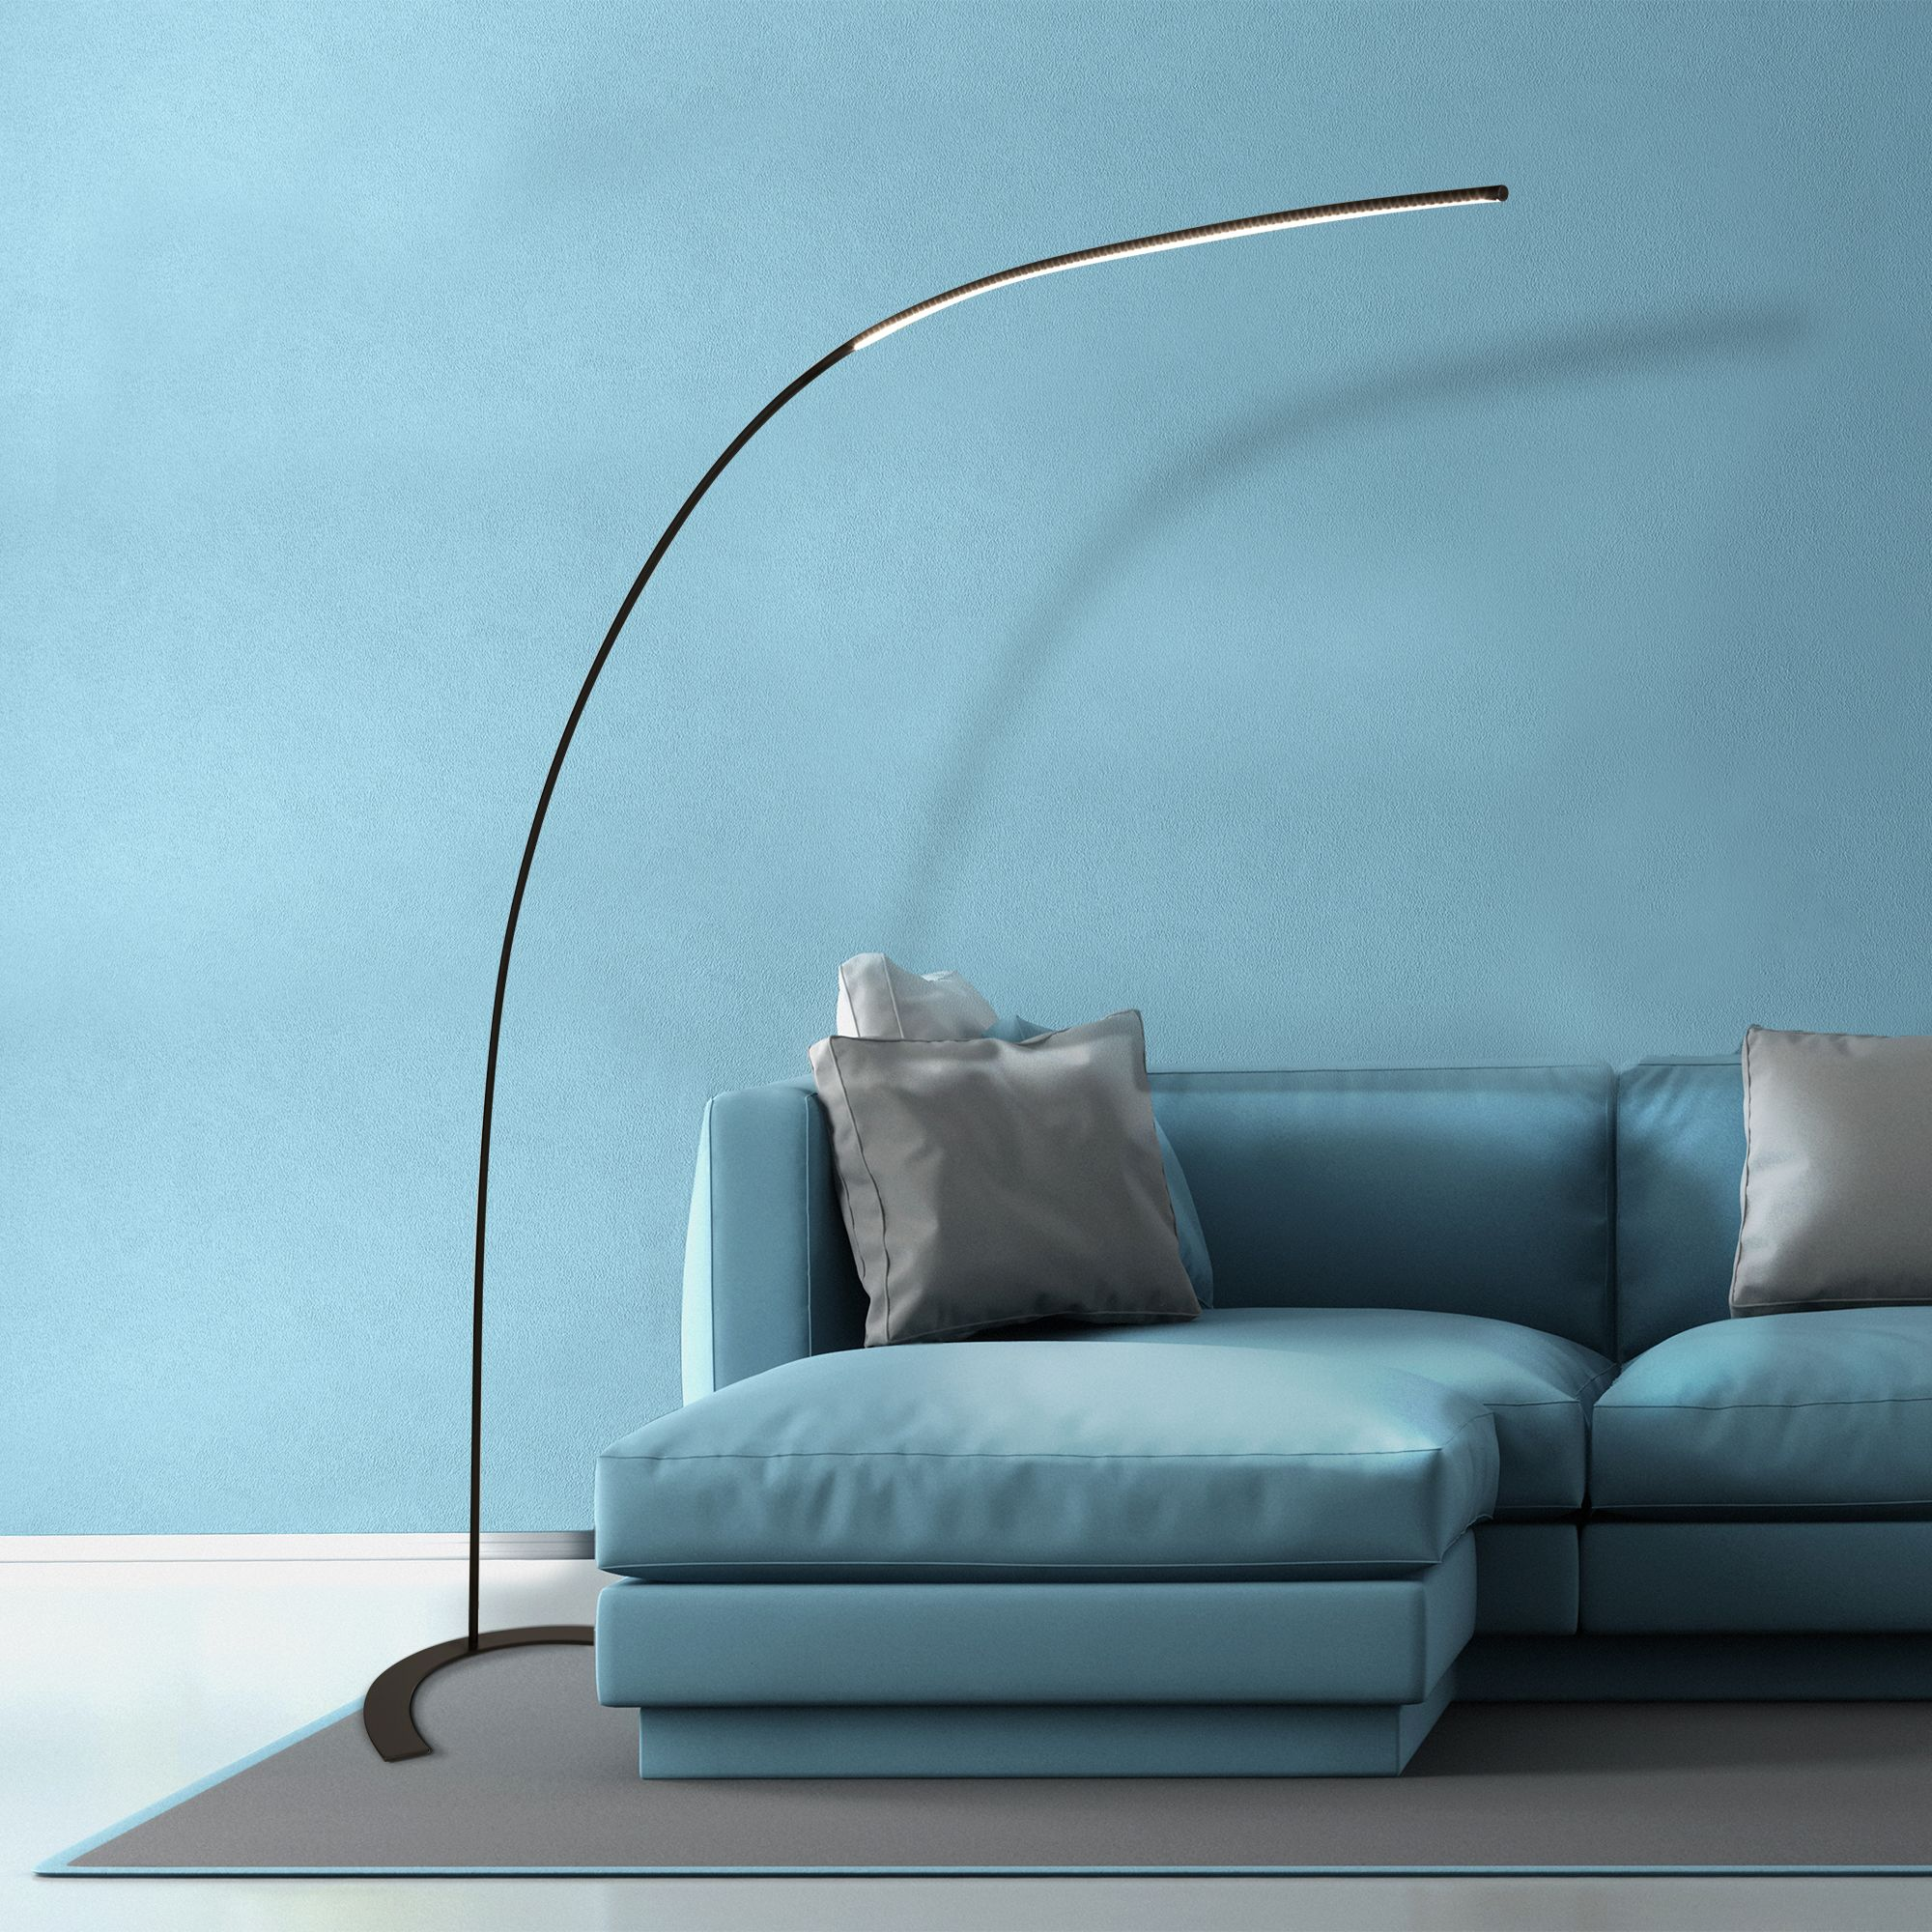 Swell Large Led Arch Floor Lamp Black Finish With Dimmer Download Free Architecture Designs Jebrpmadebymaigaardcom